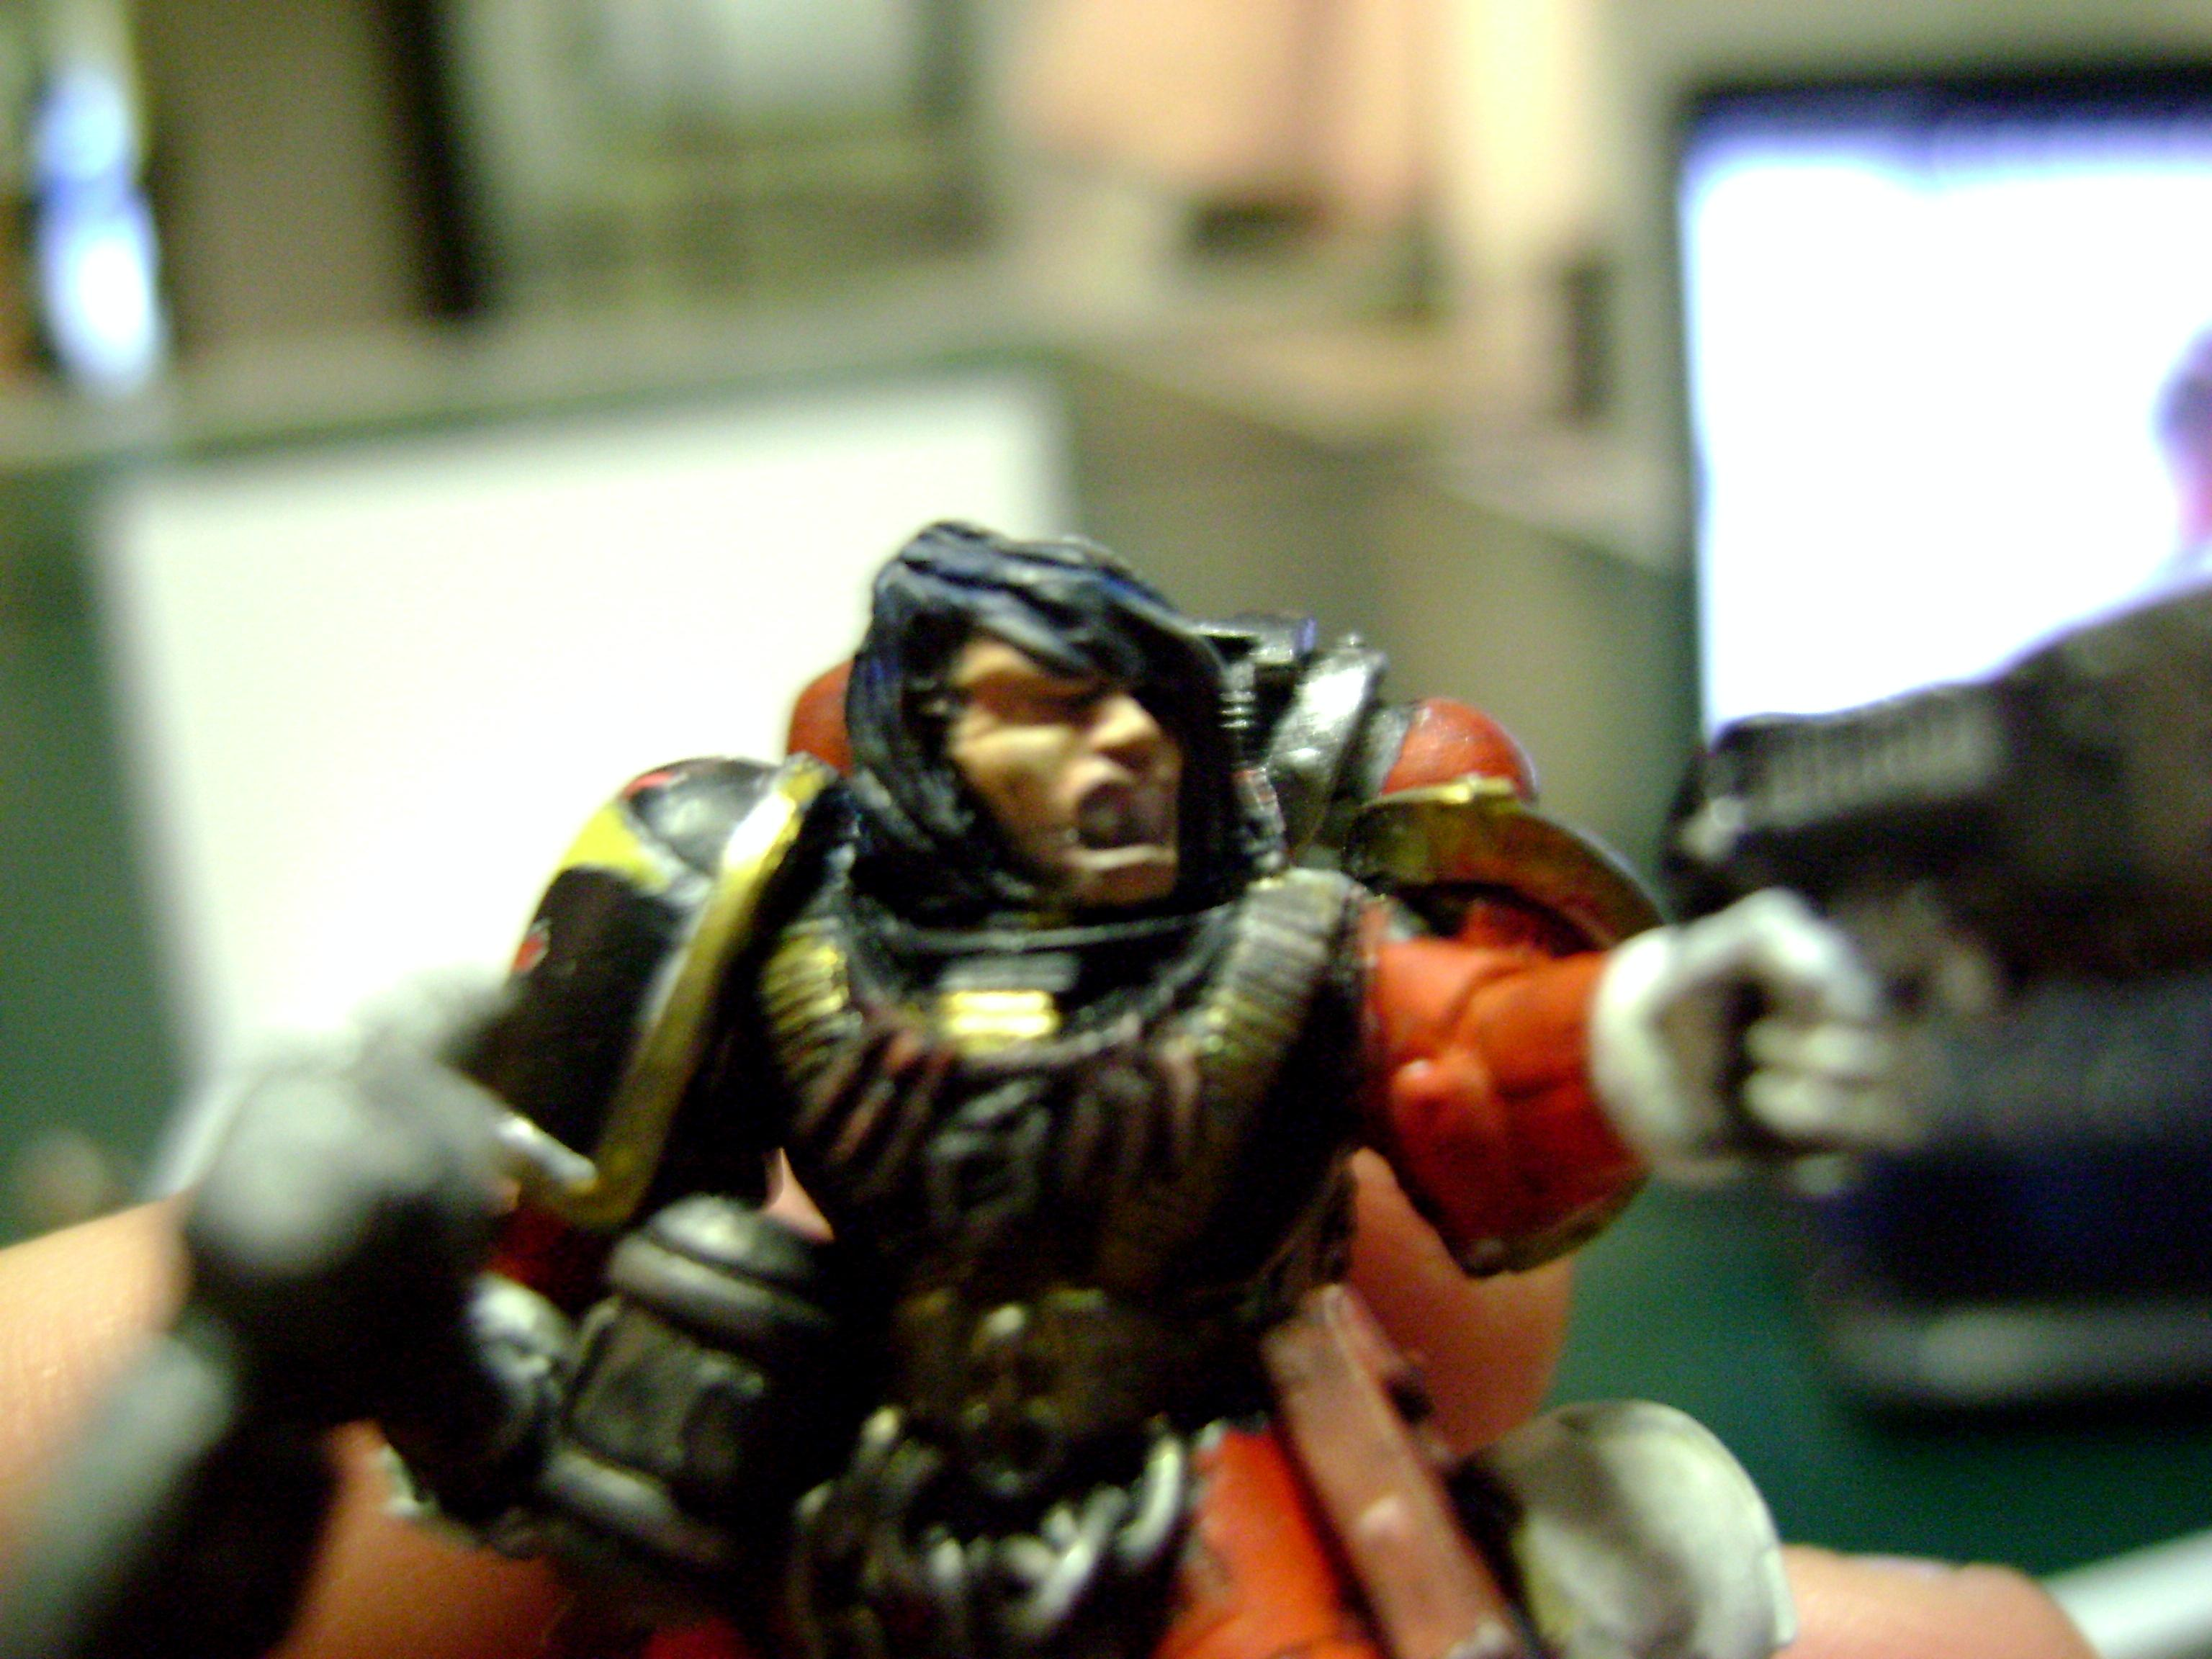 sgt. Hector close up